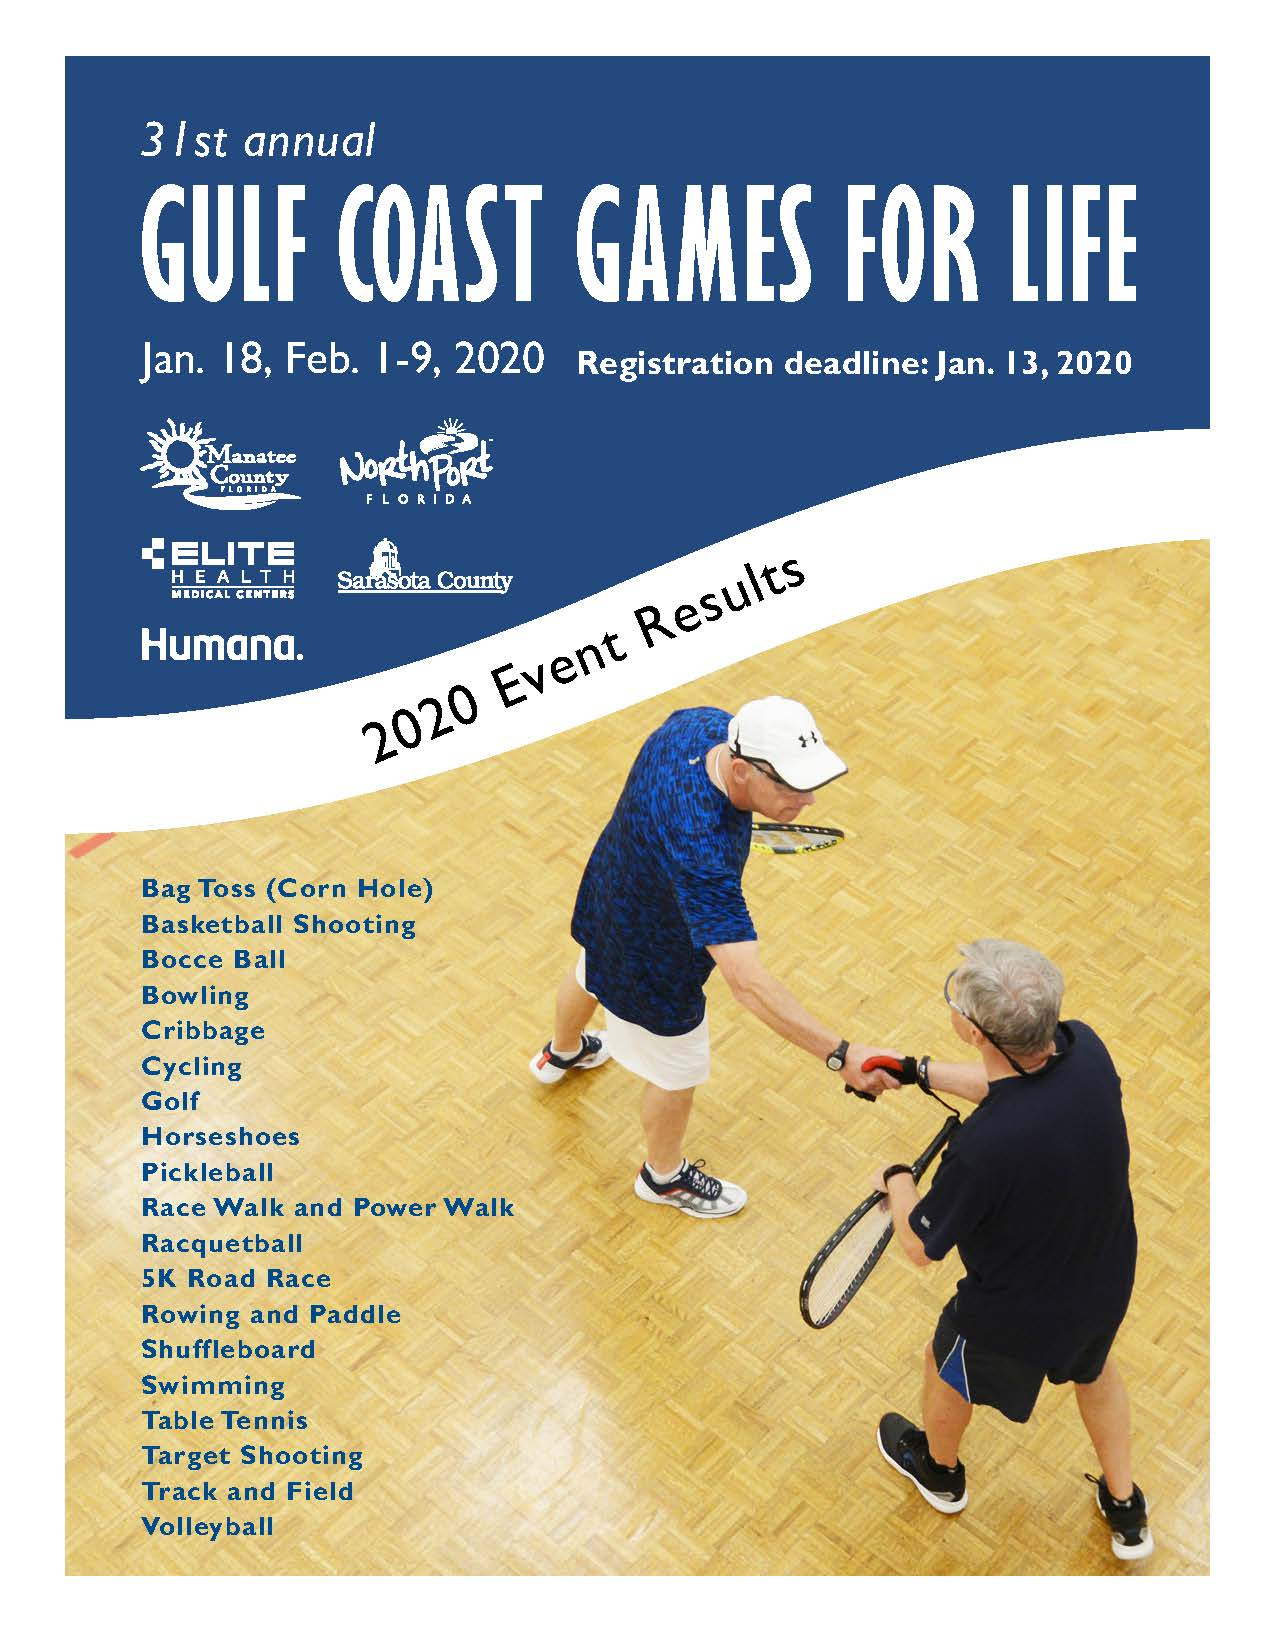 Gulf Coast Games For Life Guide Cover 2020